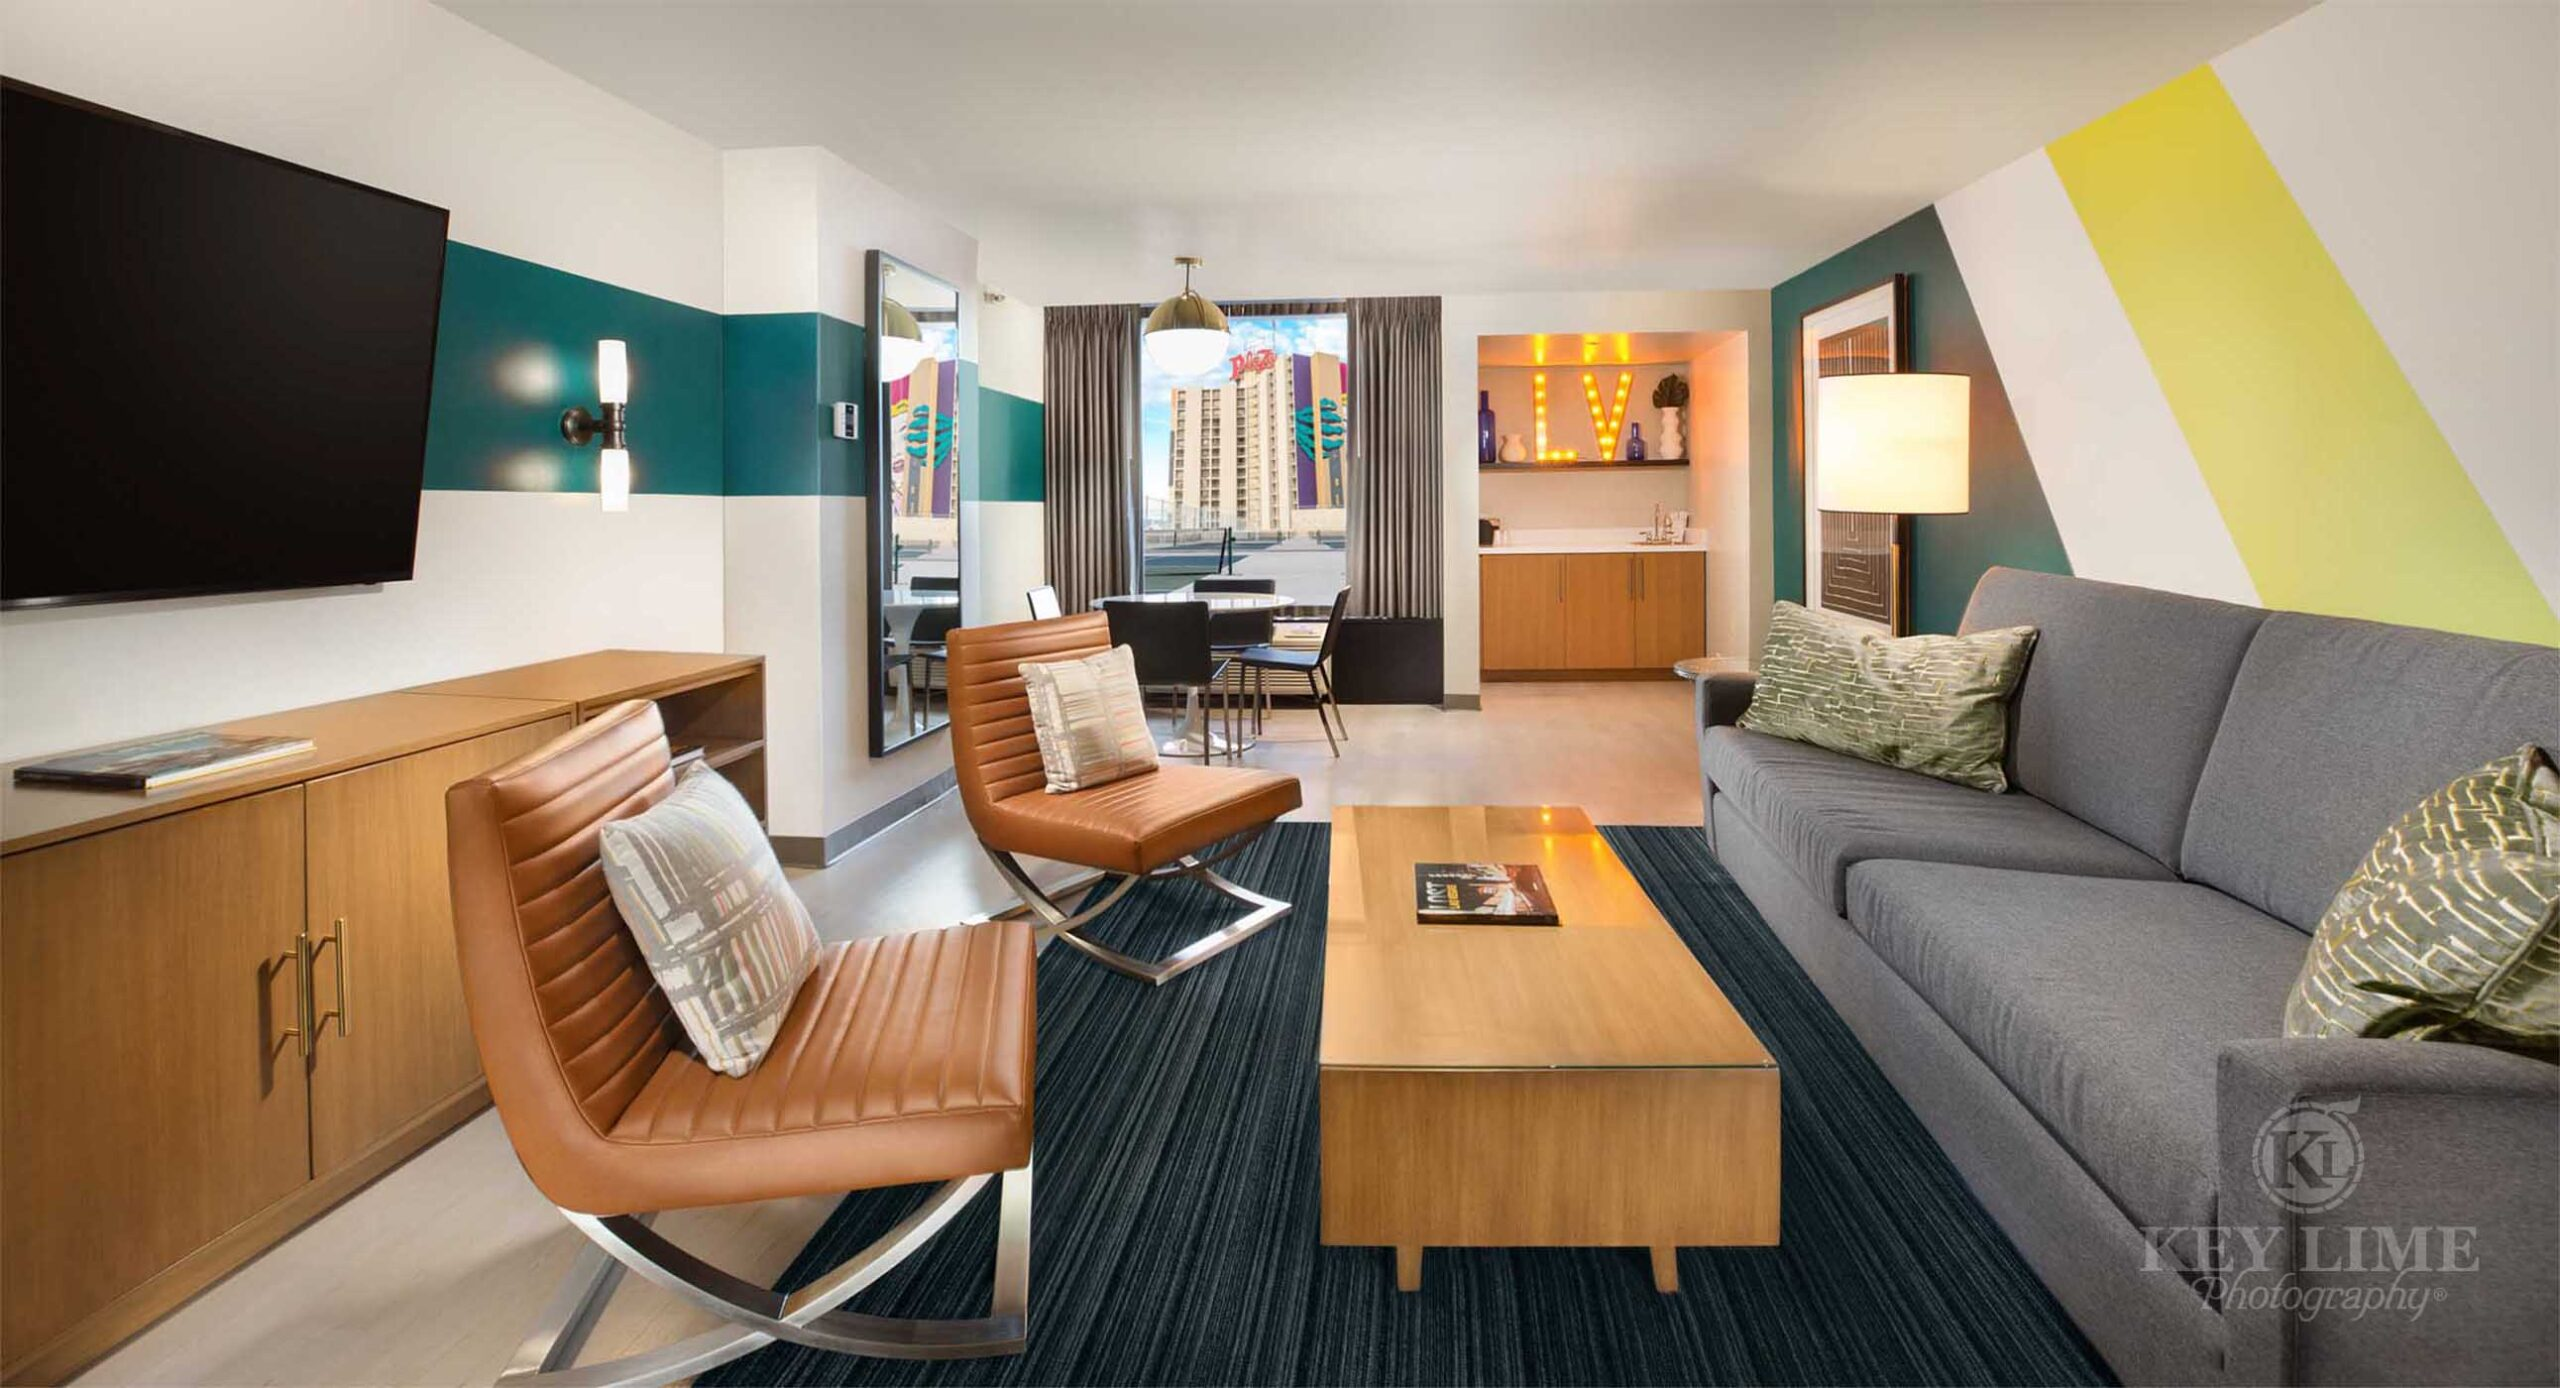 Pool suite inside a Las Vegas hotel. Building photographer image. Bachelor pad with gray sofa and tan, leather chairs.